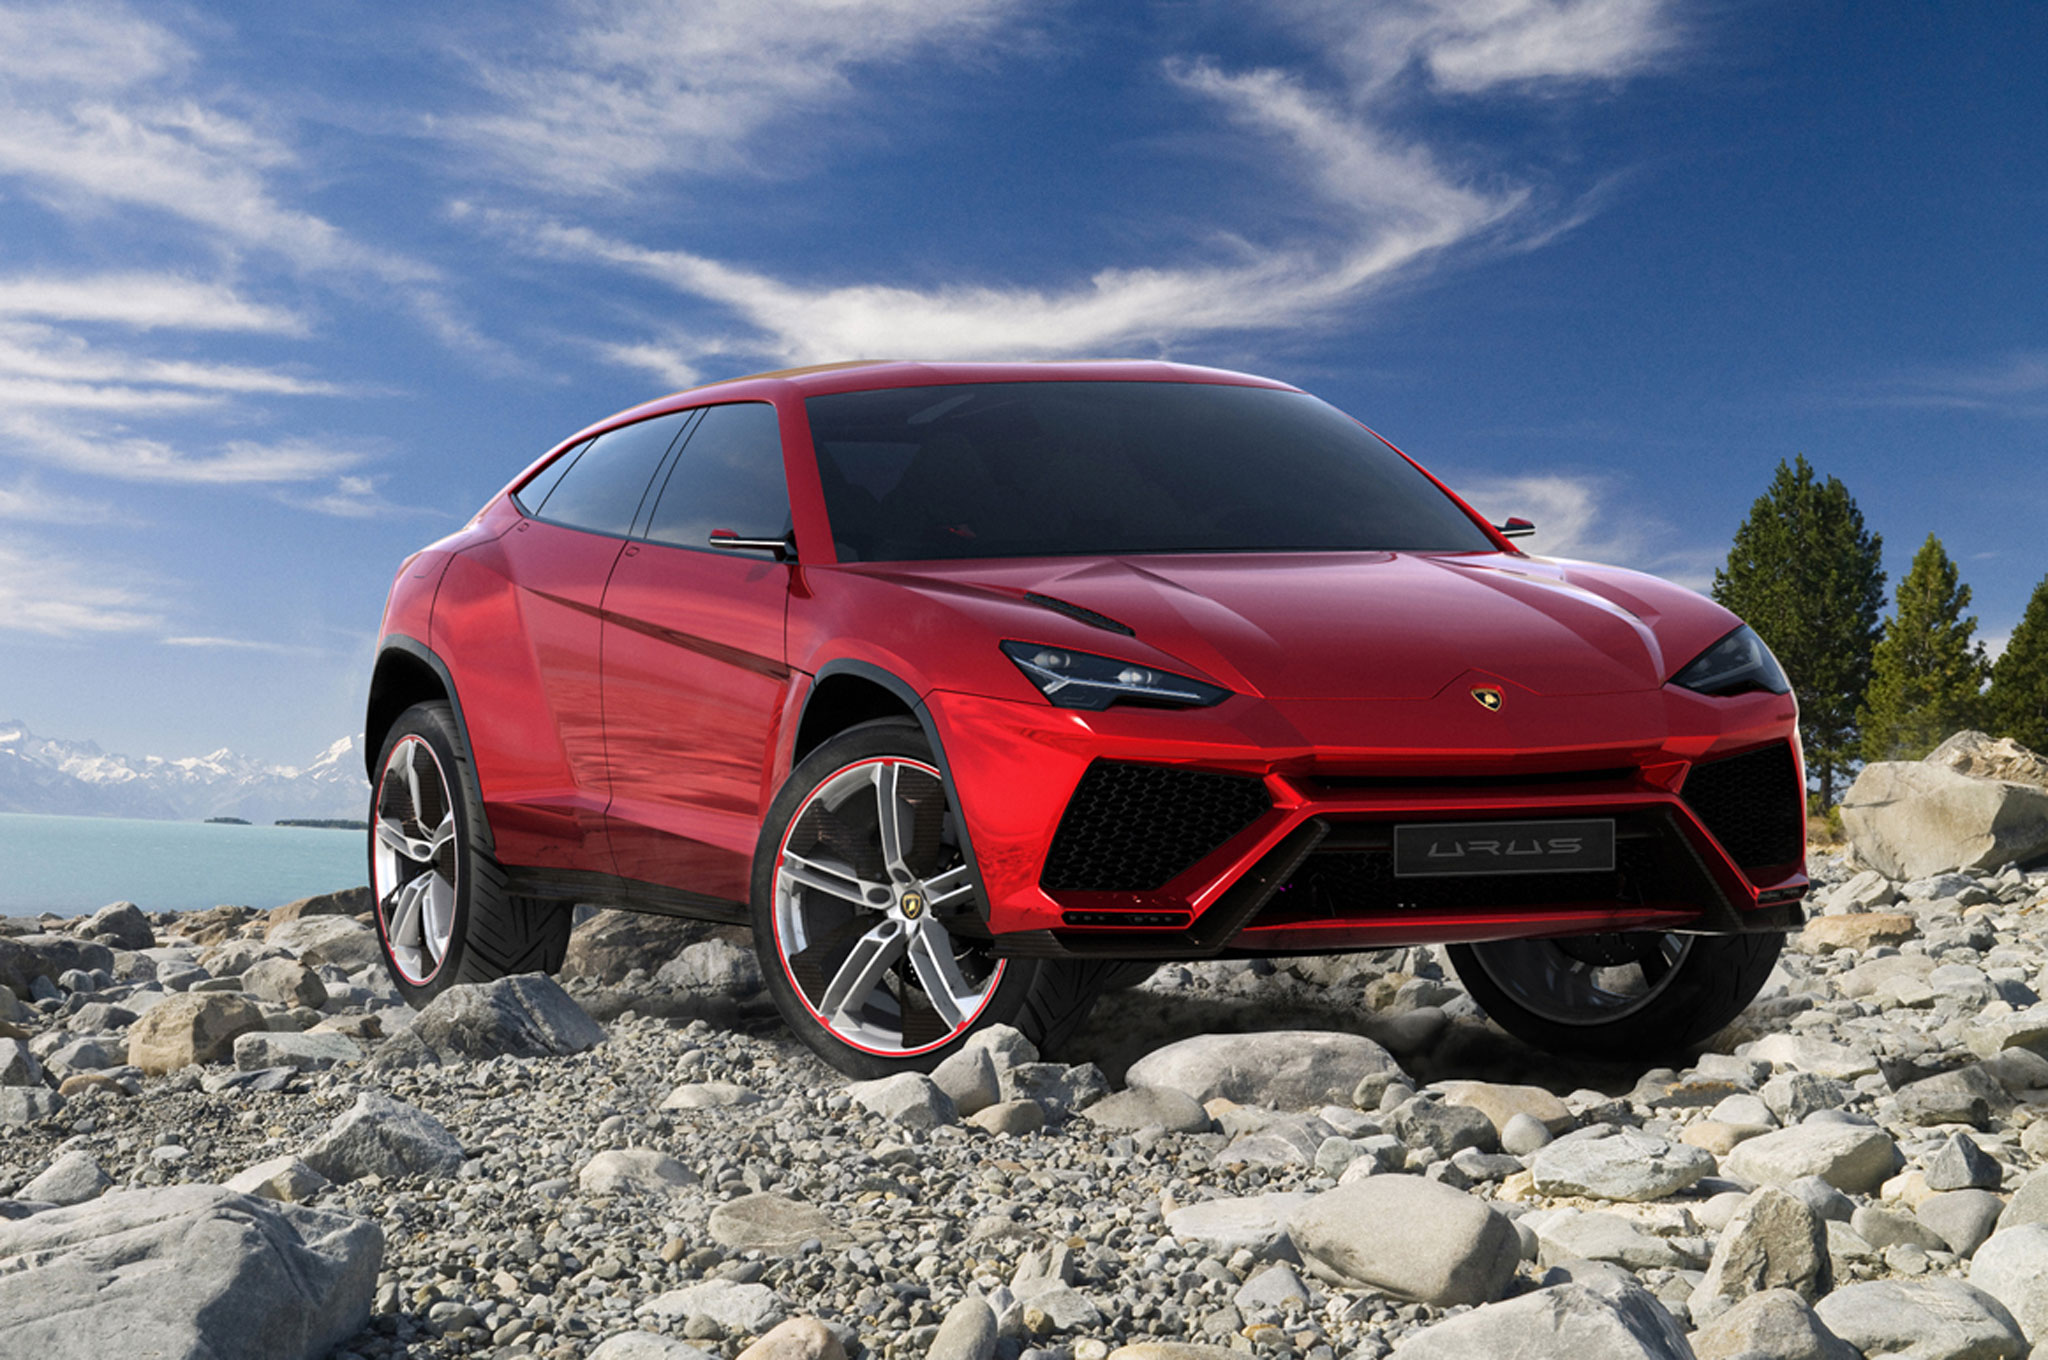 official lamborghini confirms suv for 2018 motortrendofficial lamborghini confirms suv for 2018